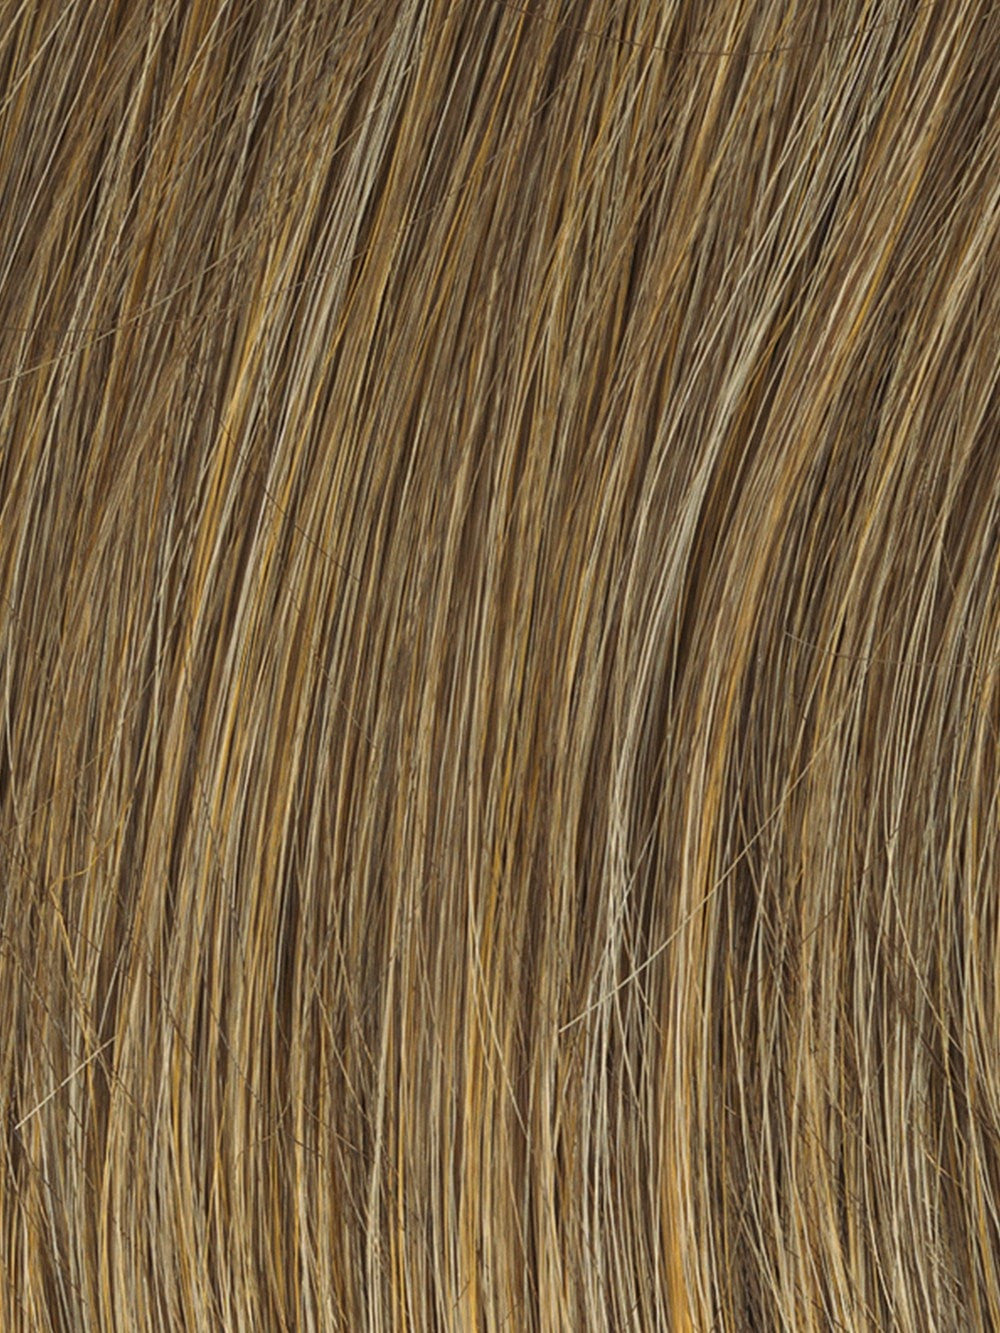 930 DARK BLONDE | Dark honey blonde with lighter blonde highlights